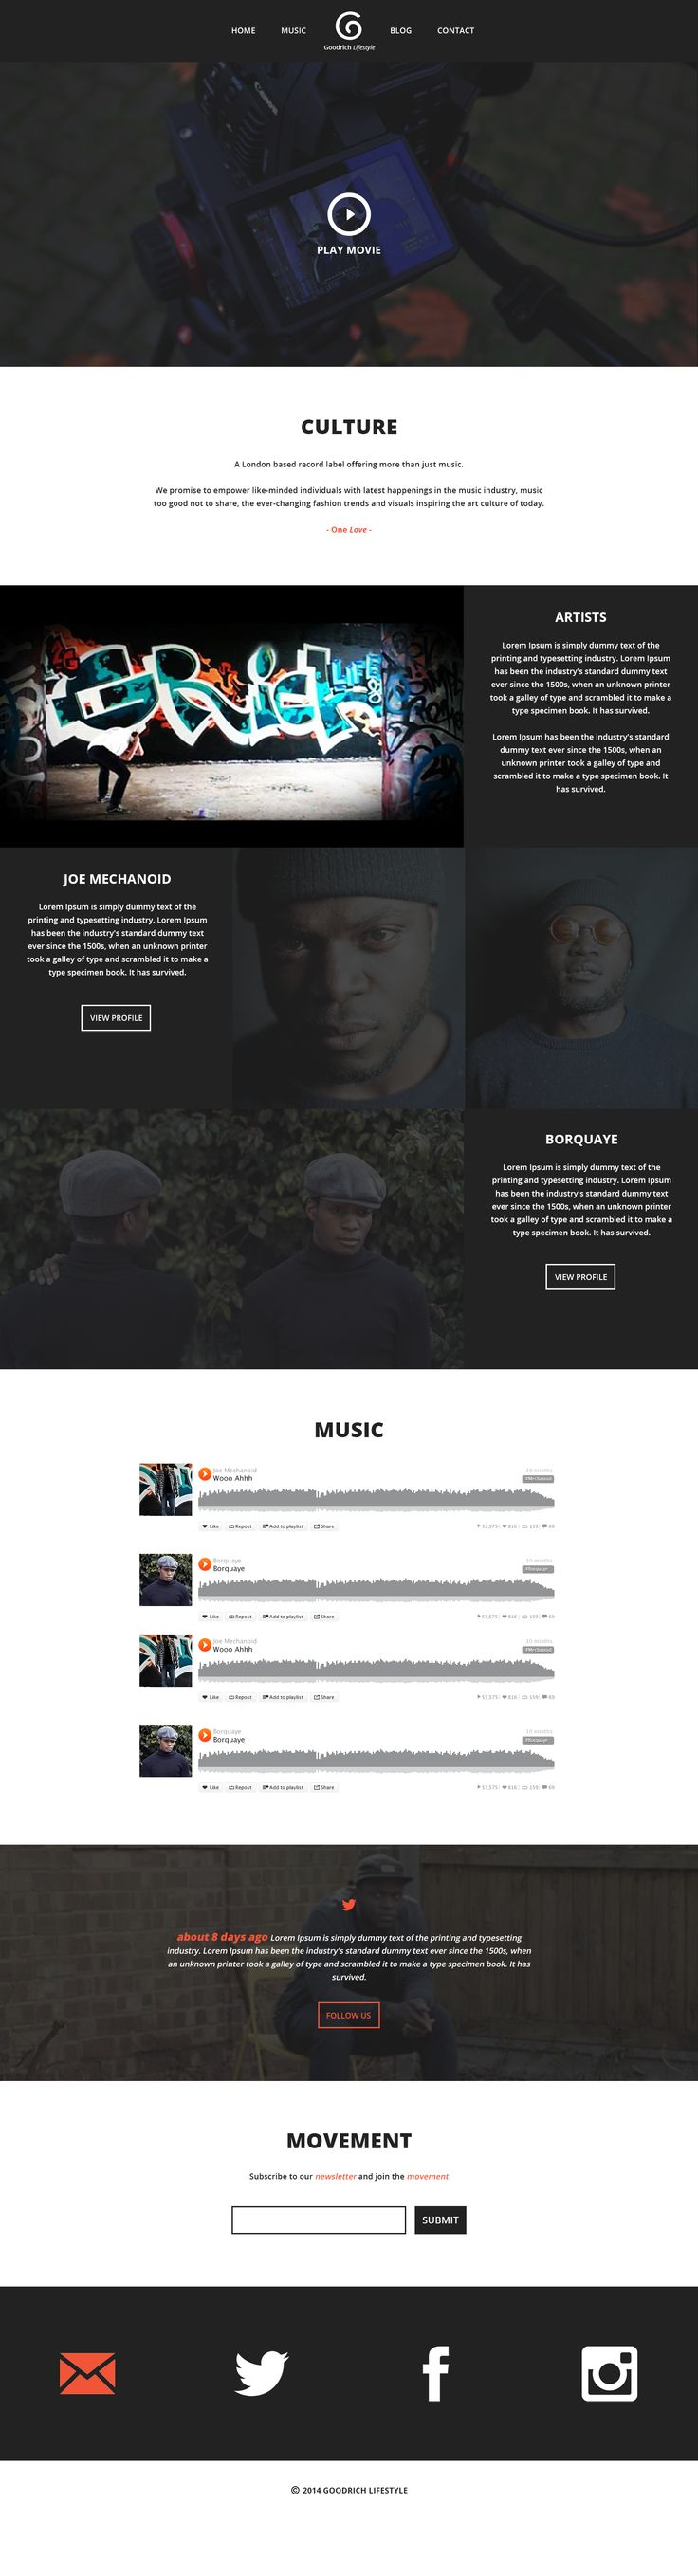 Goodrich Lifestyle is a London based record label that consists of three main artists offering more than just music. The label offers a platform for arts and creativity in the United Kingdom.  This is a WIP front page mock-up of the new Goodrich site.